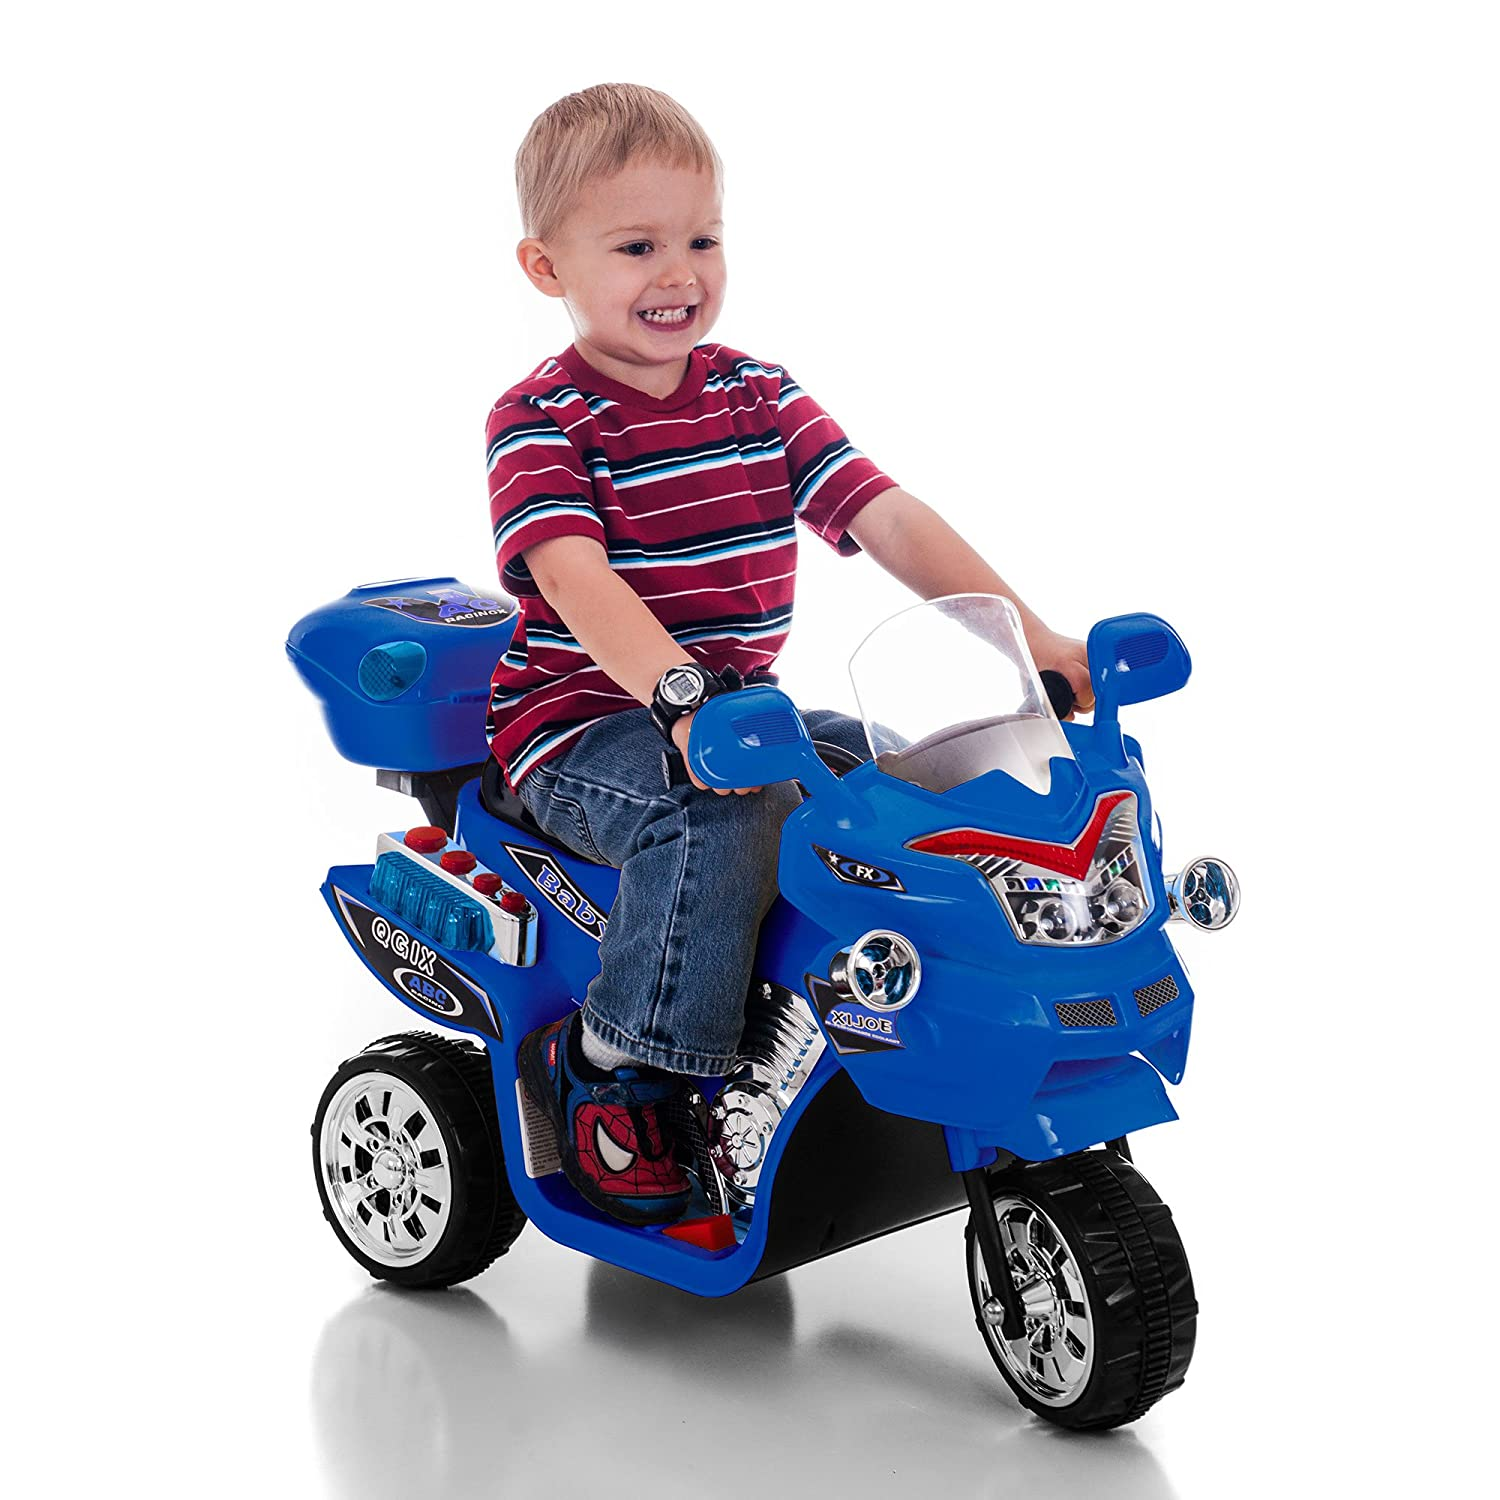 Ride On Toy 3 Wheel Motorcycle For Kids Battery Avigo Electric Scooter Wiring Diagram Powered By Lil Rider Toys Boys And Girls 2 5 Year Old Black